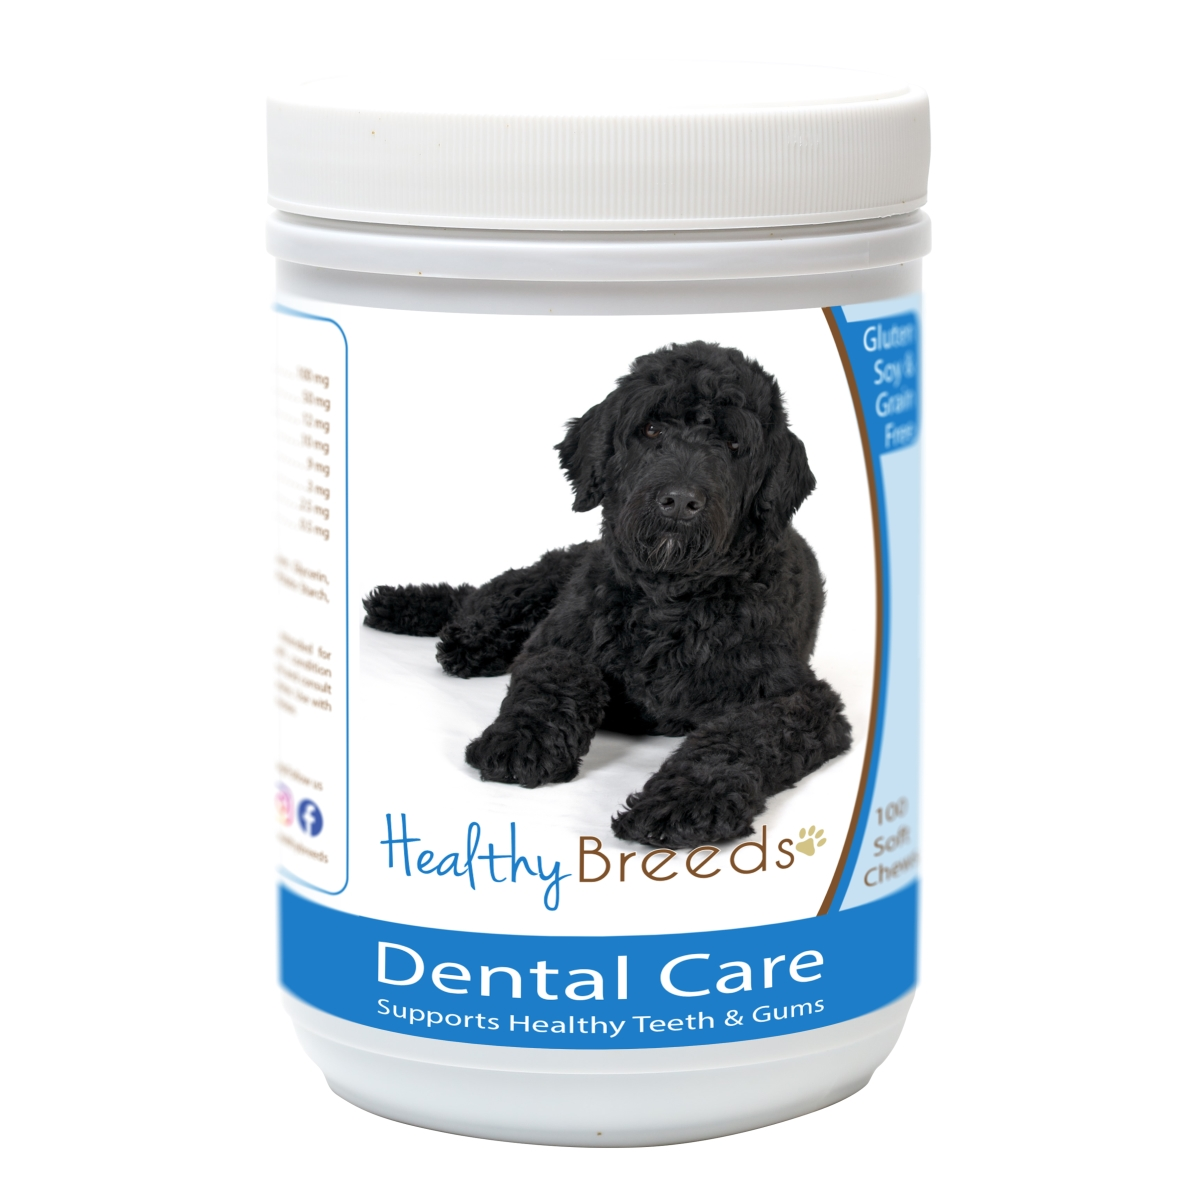 Healthy Breeds 840235163503 Portuguese Water Dog Breath Care Soft Chews for Dogs - 60 Count